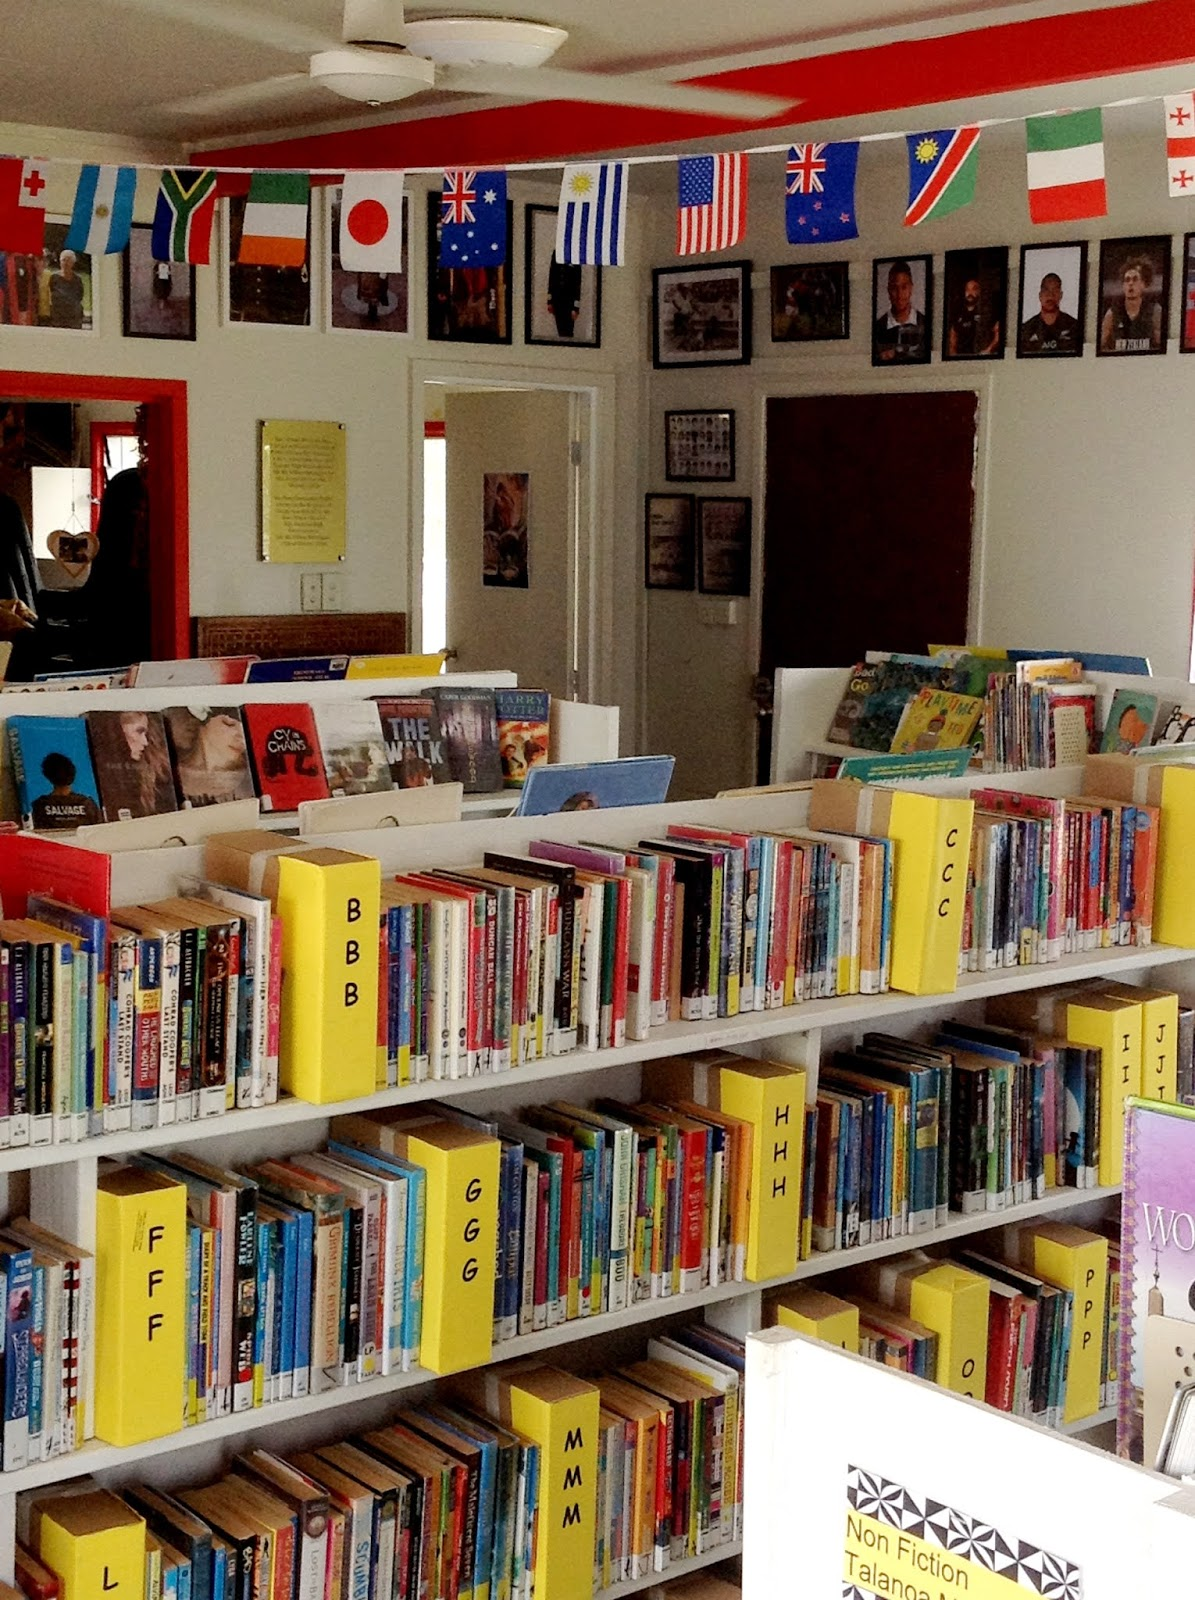 A photo of books on library shelves